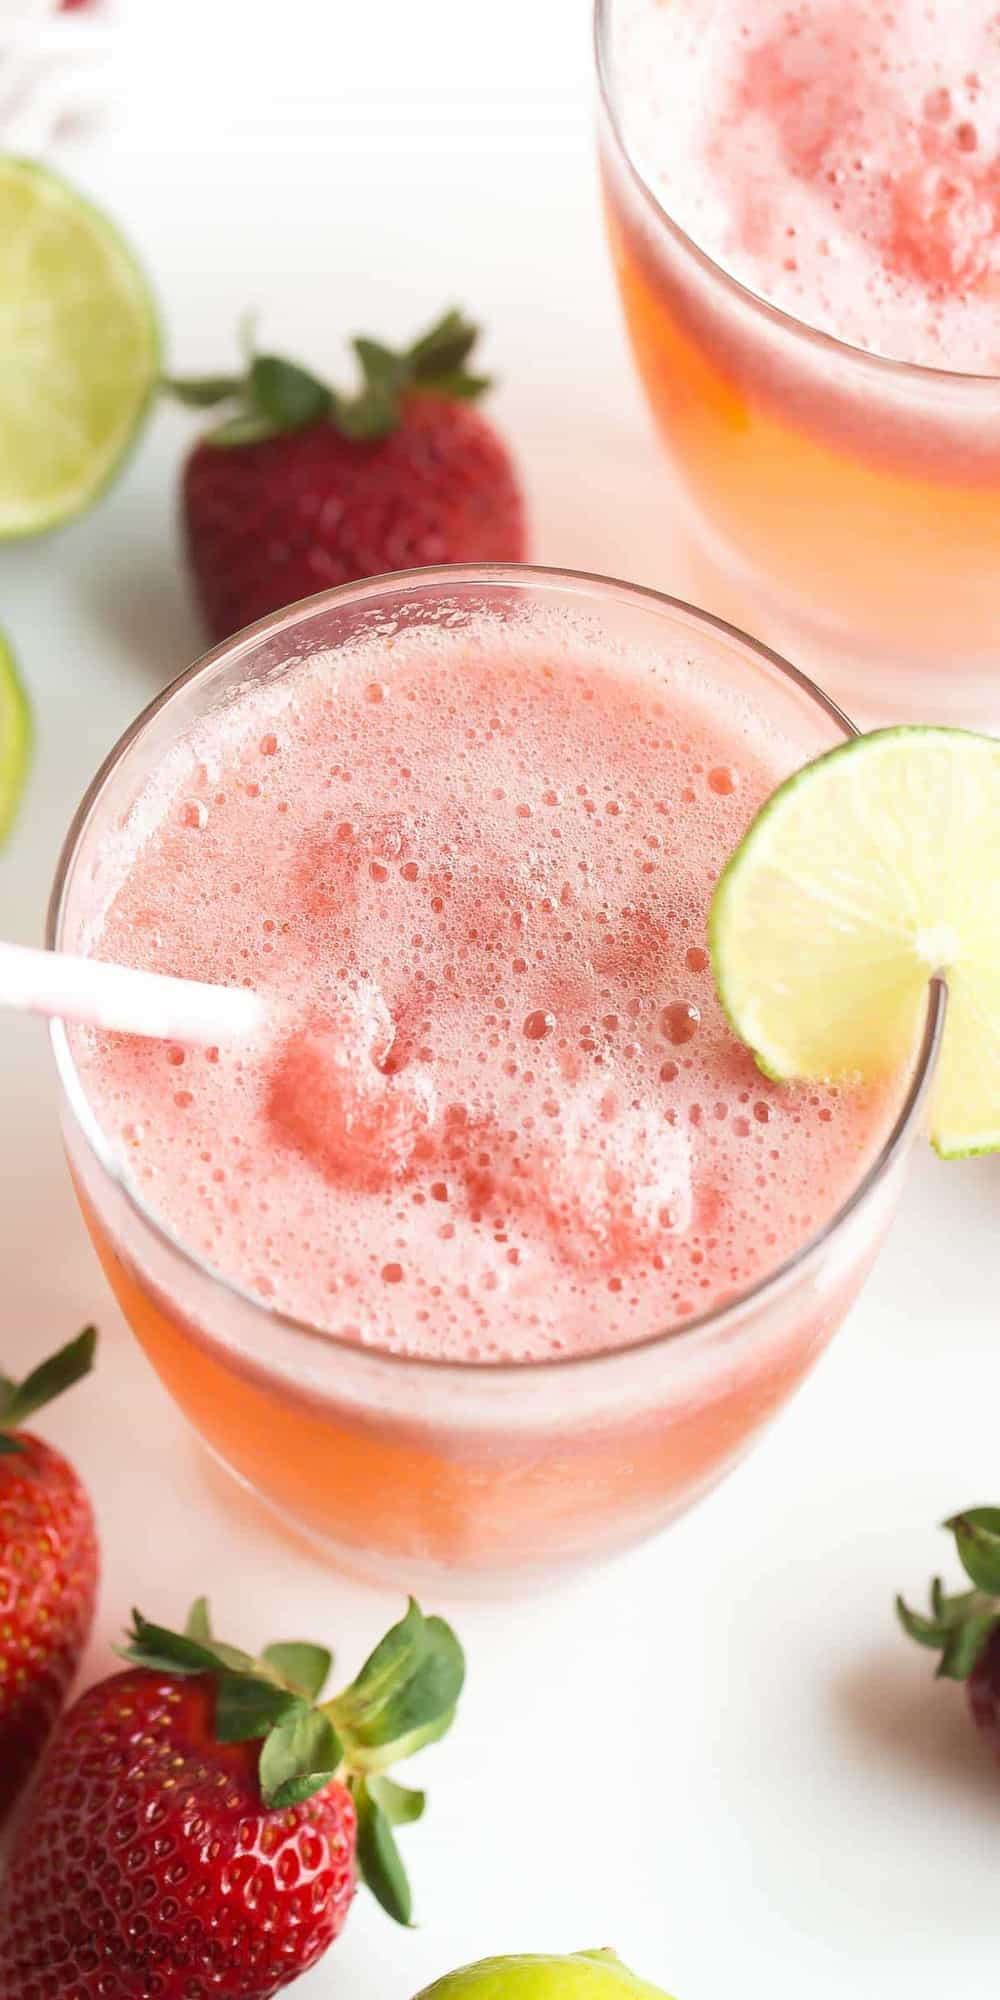 This Berry Lime Slush is a cold, frosty summer drink that will keep your thirst quenched! It's great for storing in the freezer and pulling out for surprise visitors, picnics and barbecues! https://www.thereciperebel.com/berry-lime-slush-recipe/